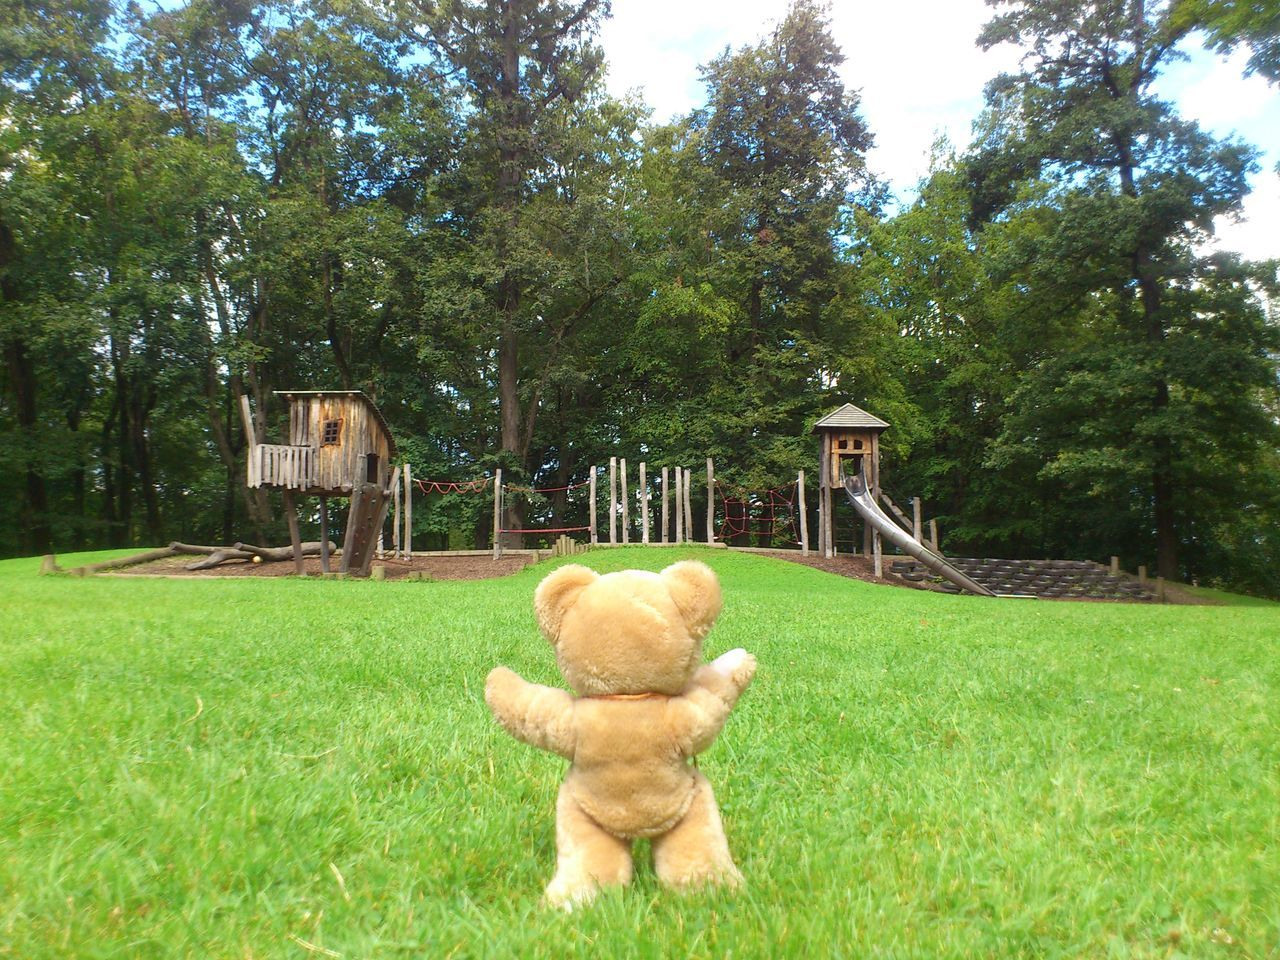 A picture with a meaning for teddy. Form your own opinion and share it here. What Who Where Kids Playing Kids Playing In Park Nature Outdoors Park Relaxation Relaxing Resting Ted Teddy And Friend Teddy_on_tour Dramatic Angles Enjoy The New Normal Embrace Urban Life Chance Encounters My Year My View Exploring Style Adapted To The City